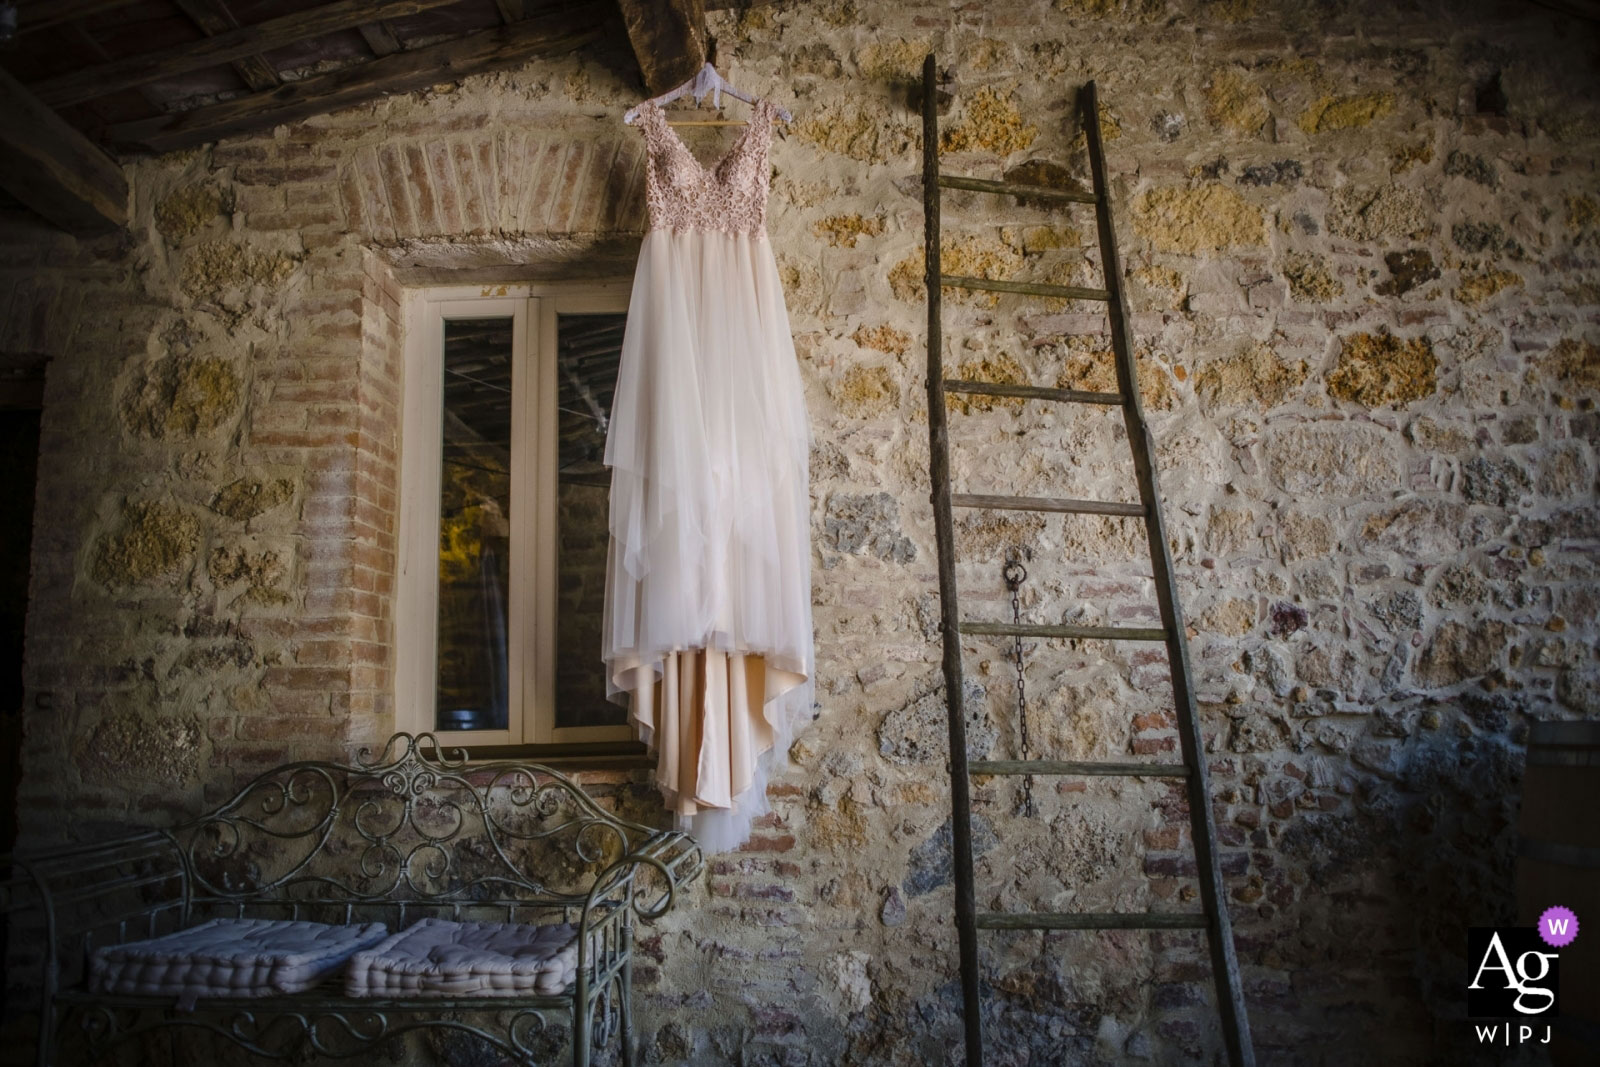 COVID & STRESS FROM PANDEMIC WEDDINGS